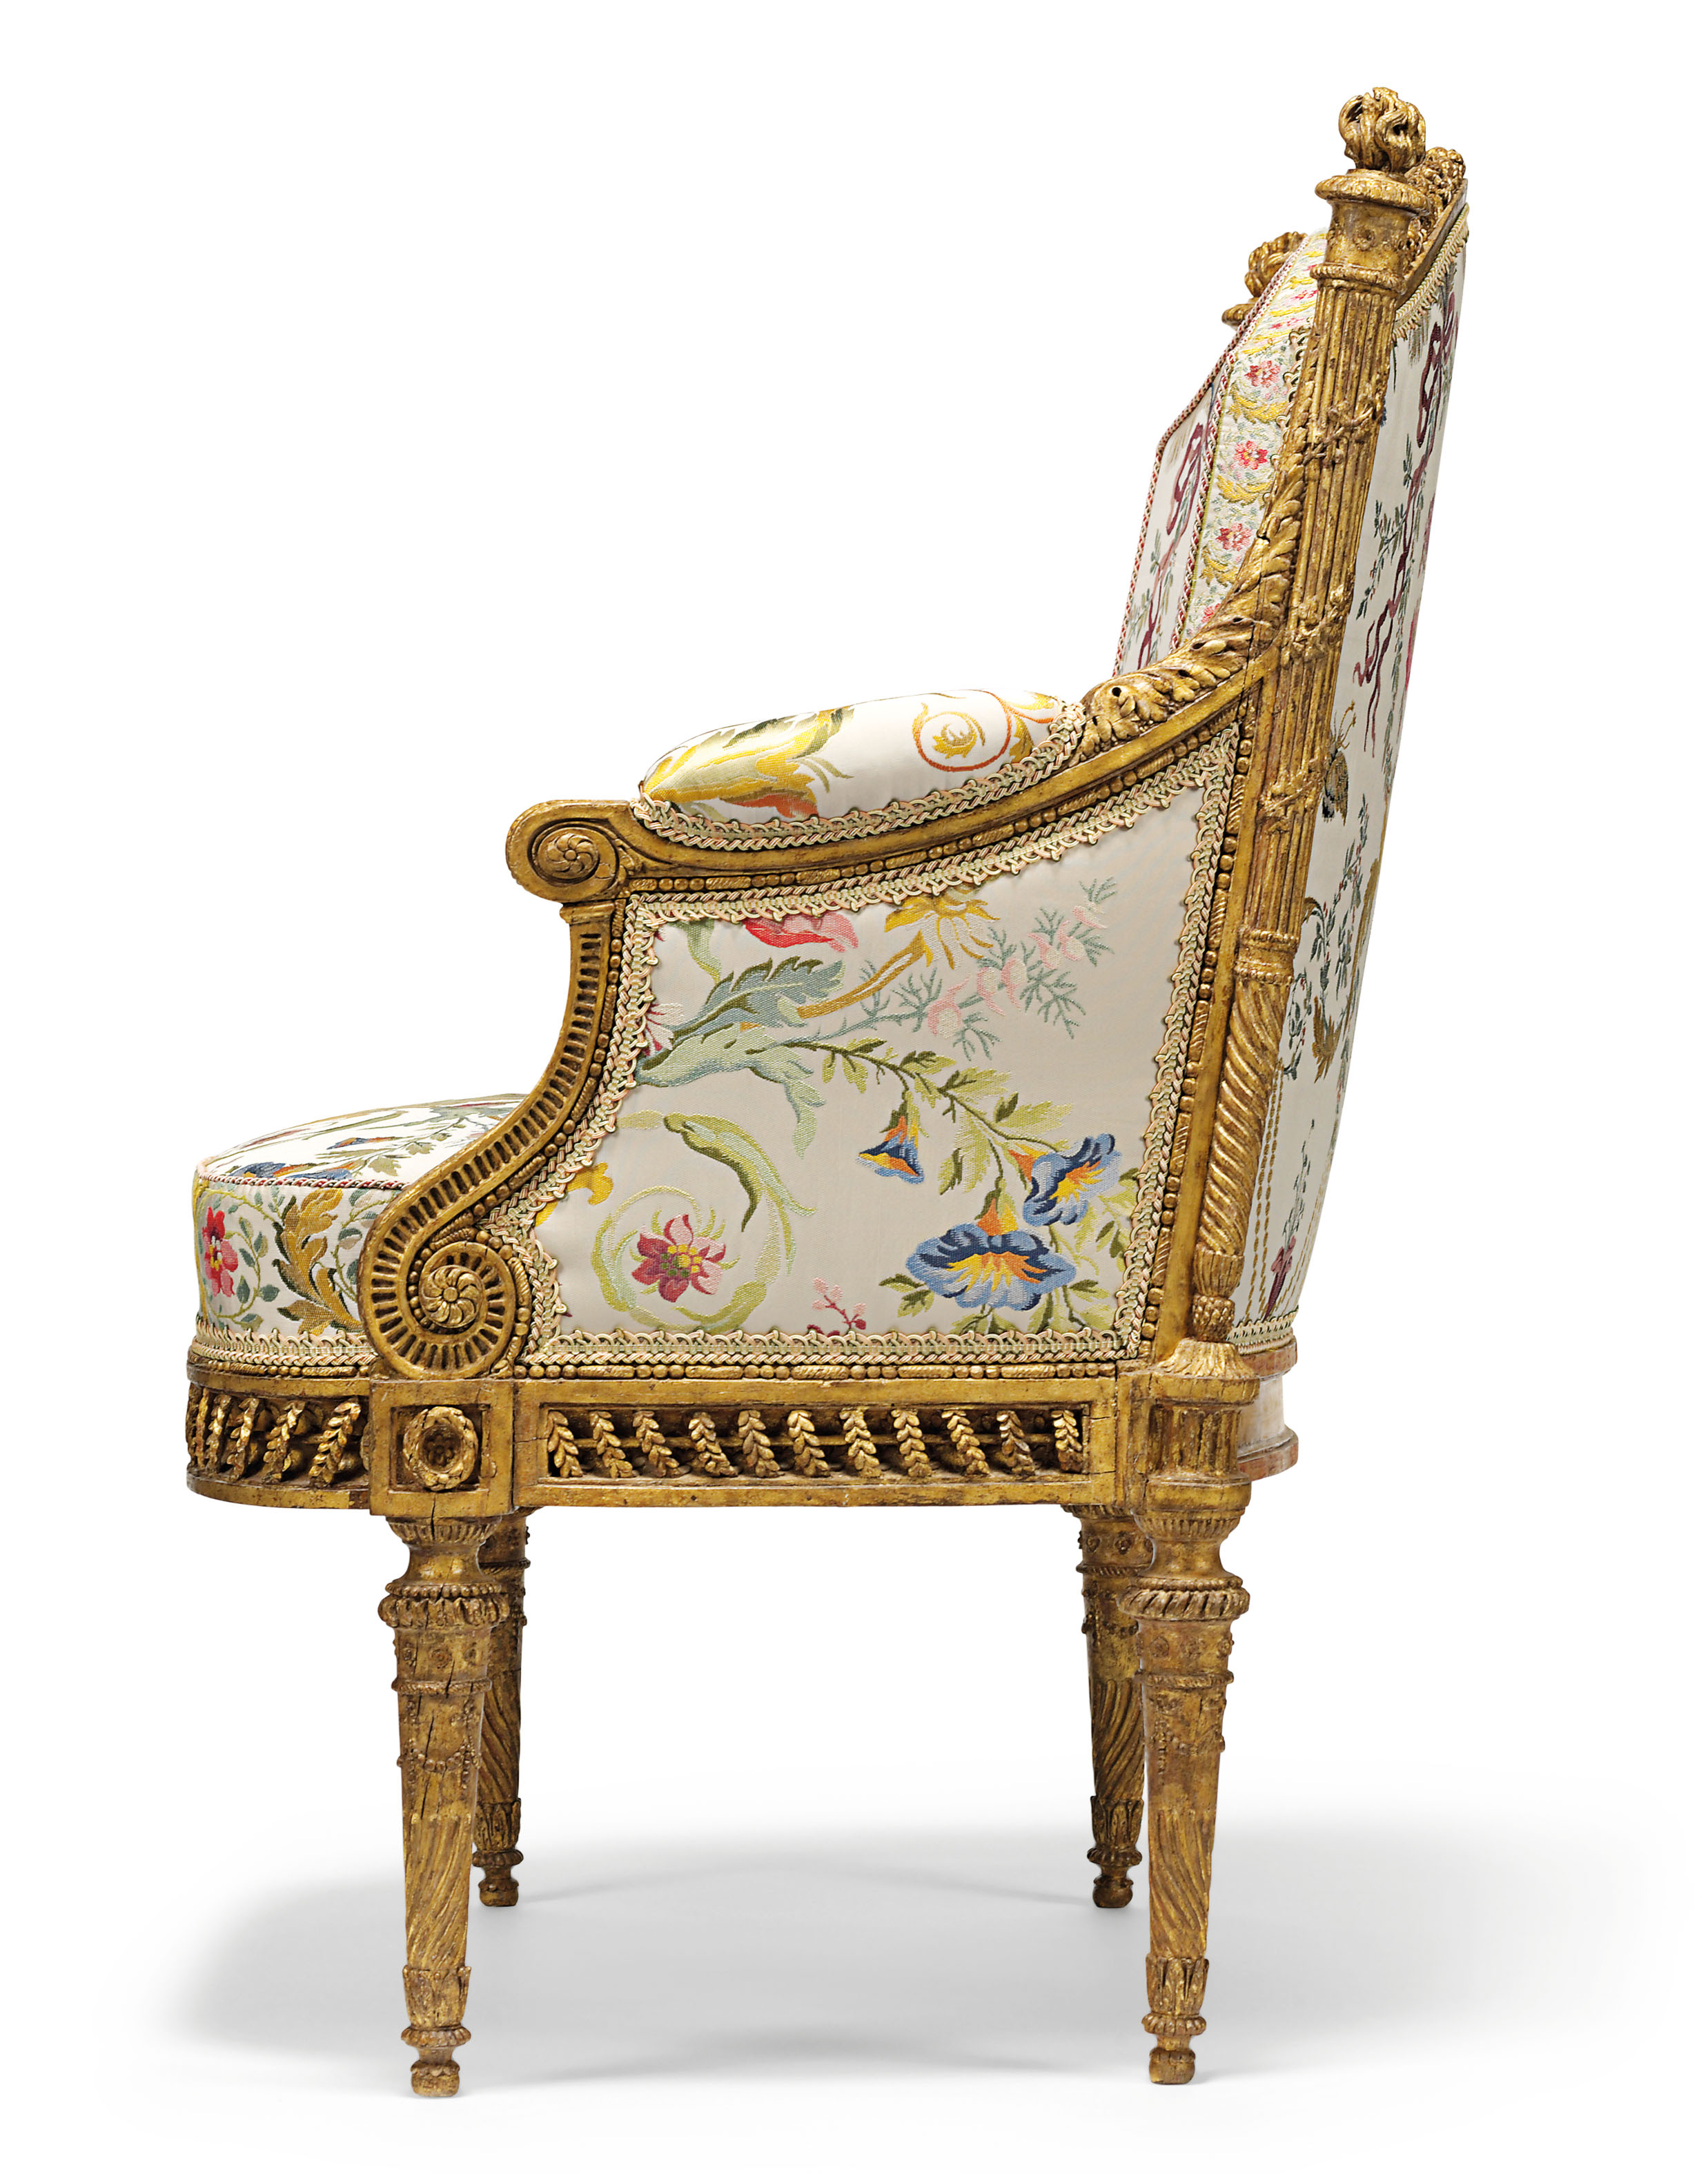 a royal louis xvi giltwood fauteuil en bergere by francois ii foliot 1780 81 designed by. Black Bedroom Furniture Sets. Home Design Ideas